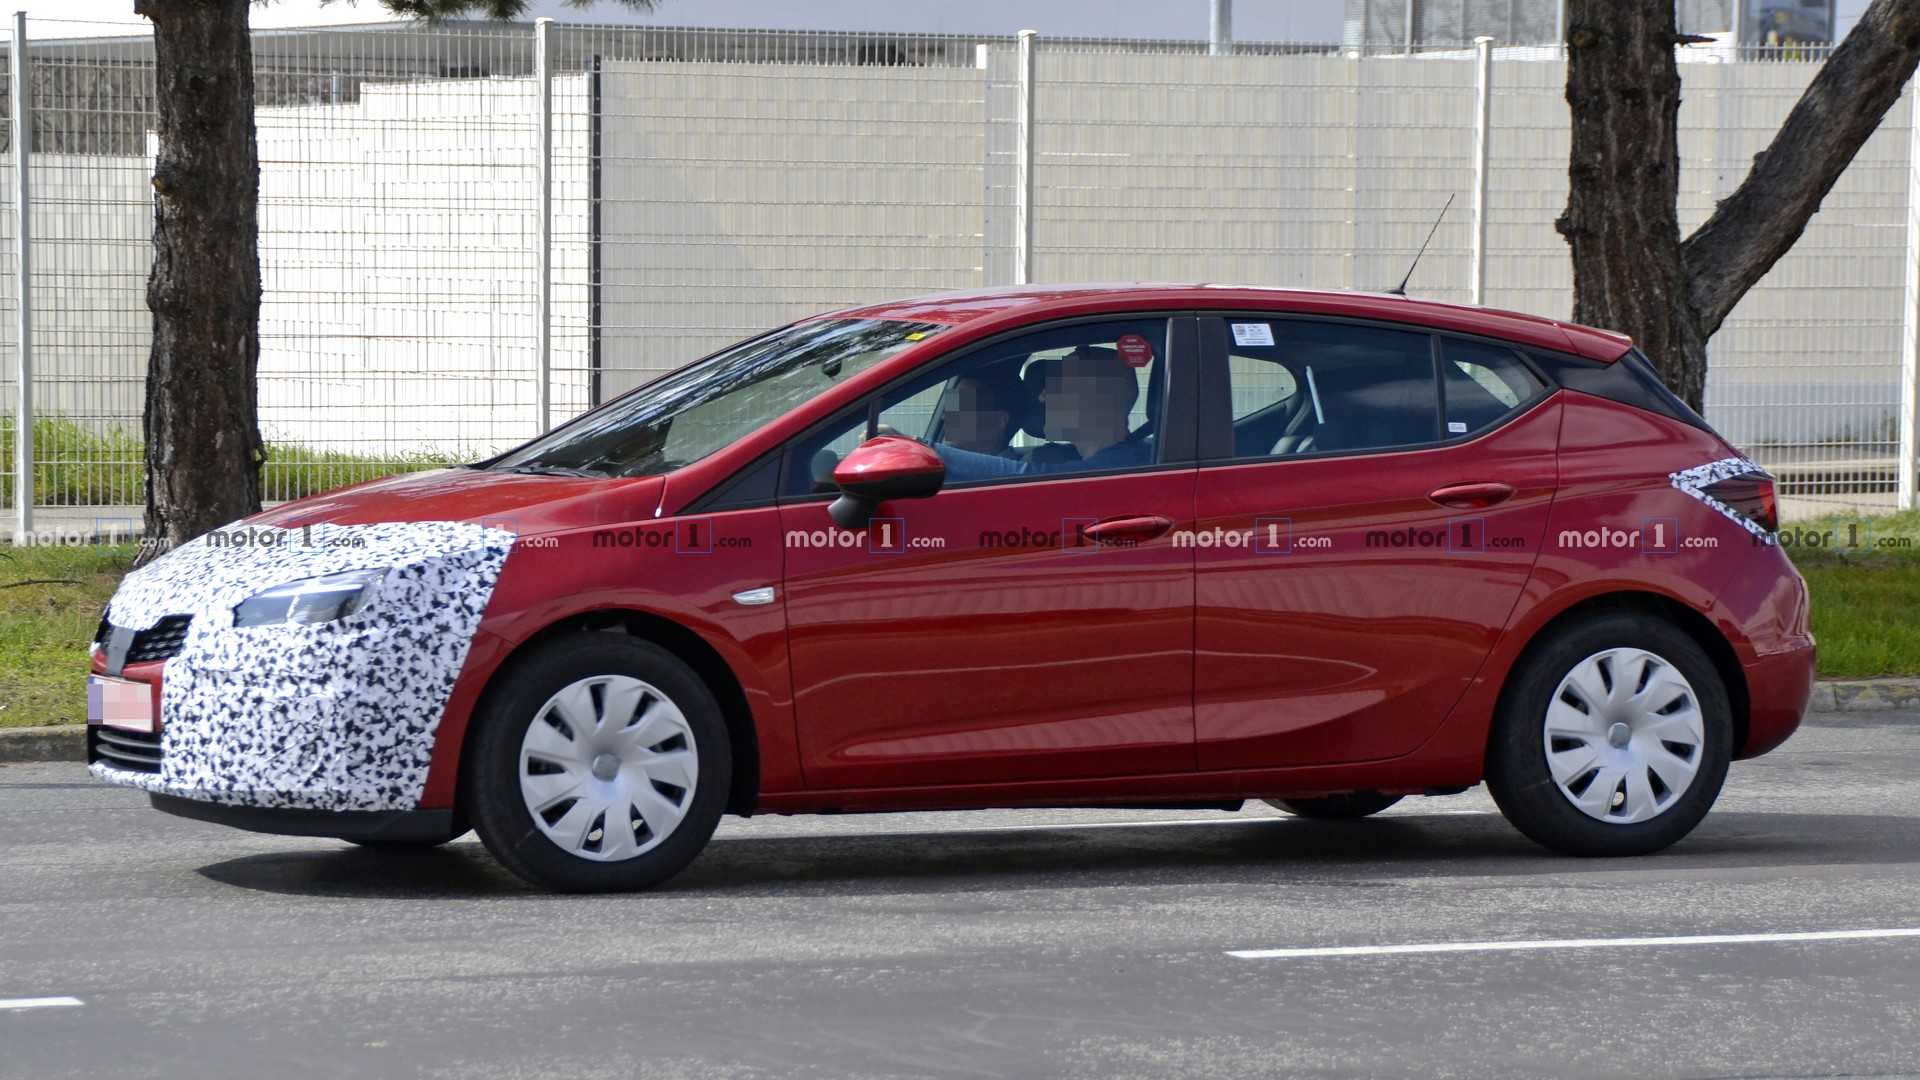 80 New Opel Astra K Facelift 2020 Redesign